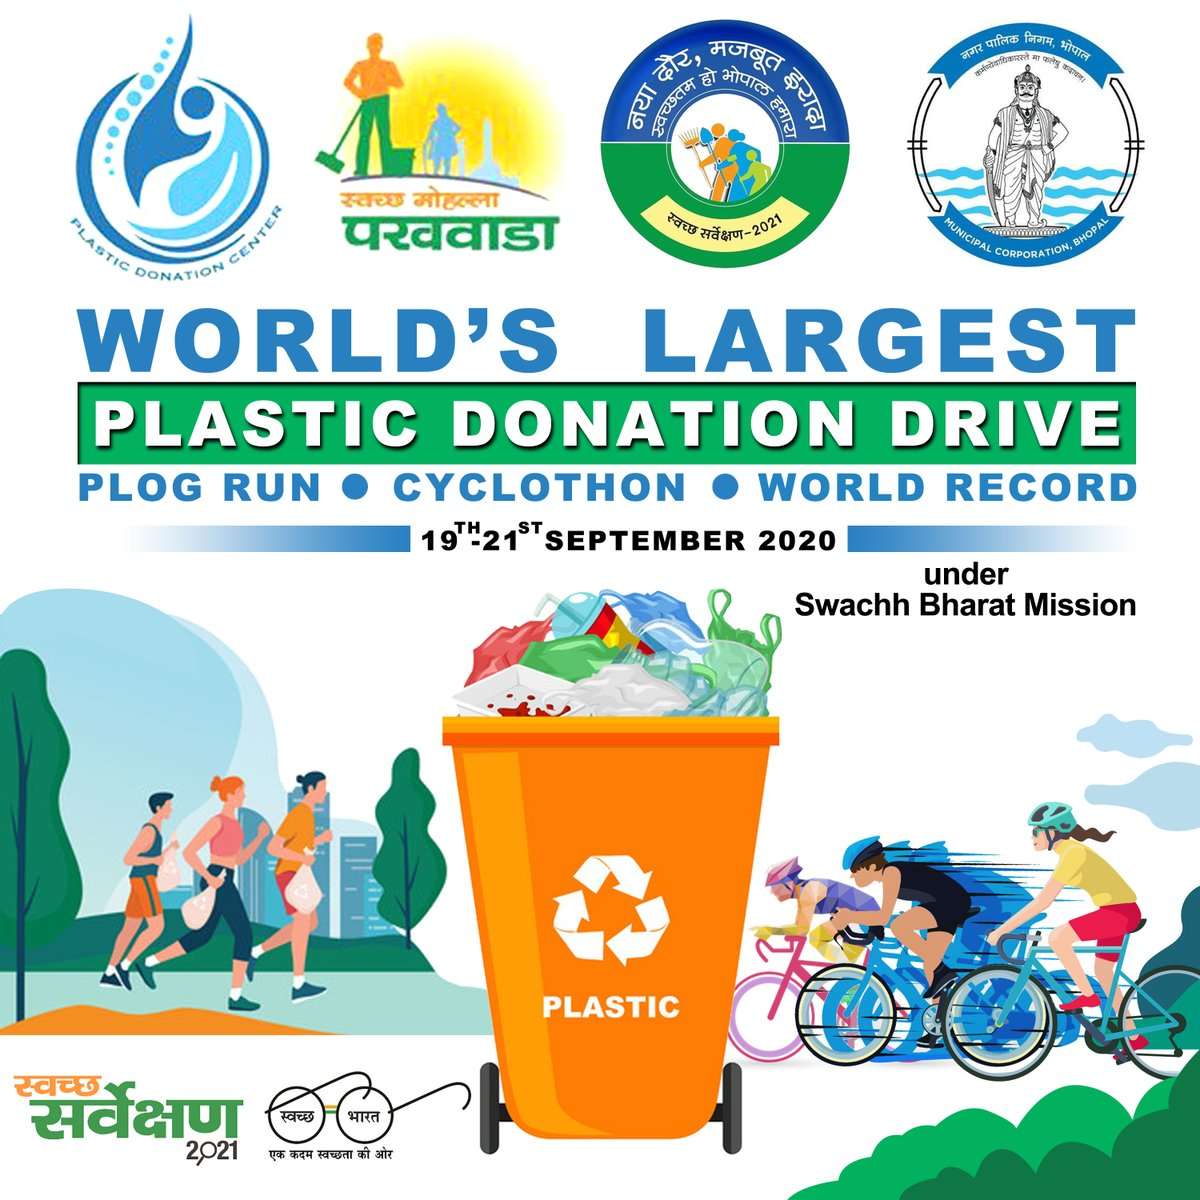 Participate in the World's Largest Plastic Donation Drive in #Bhopal For more info visit : https://t.co/Ybqdou2YXJ  #plasticdonationcenter #swachhbhopal #SwachhSurvekshan2021 #SwachhBharatAbhiyan #disposesafely https://t.co/2sPbZG8F7o